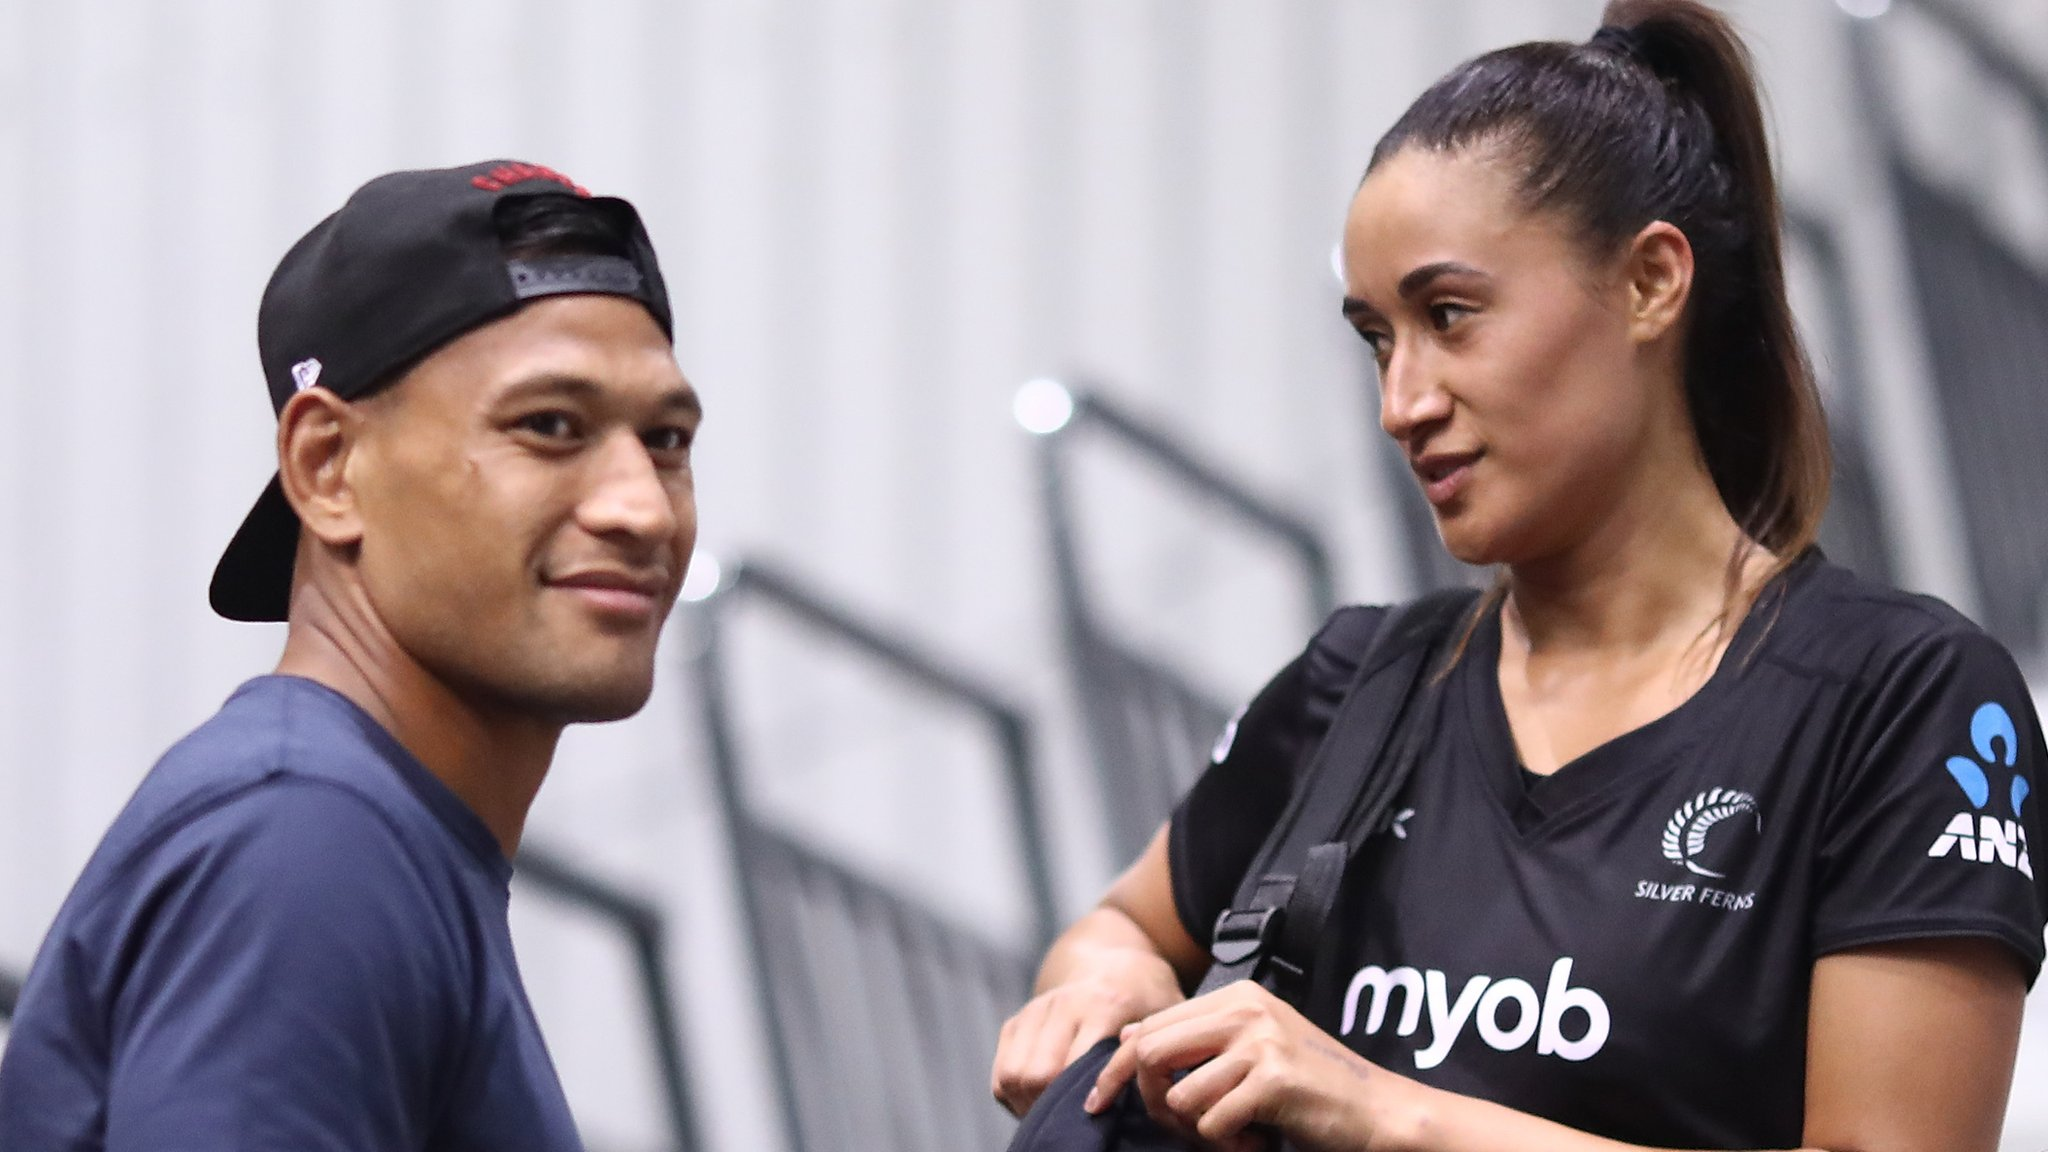 Netball Australia will not punish Folau over social media support for husband